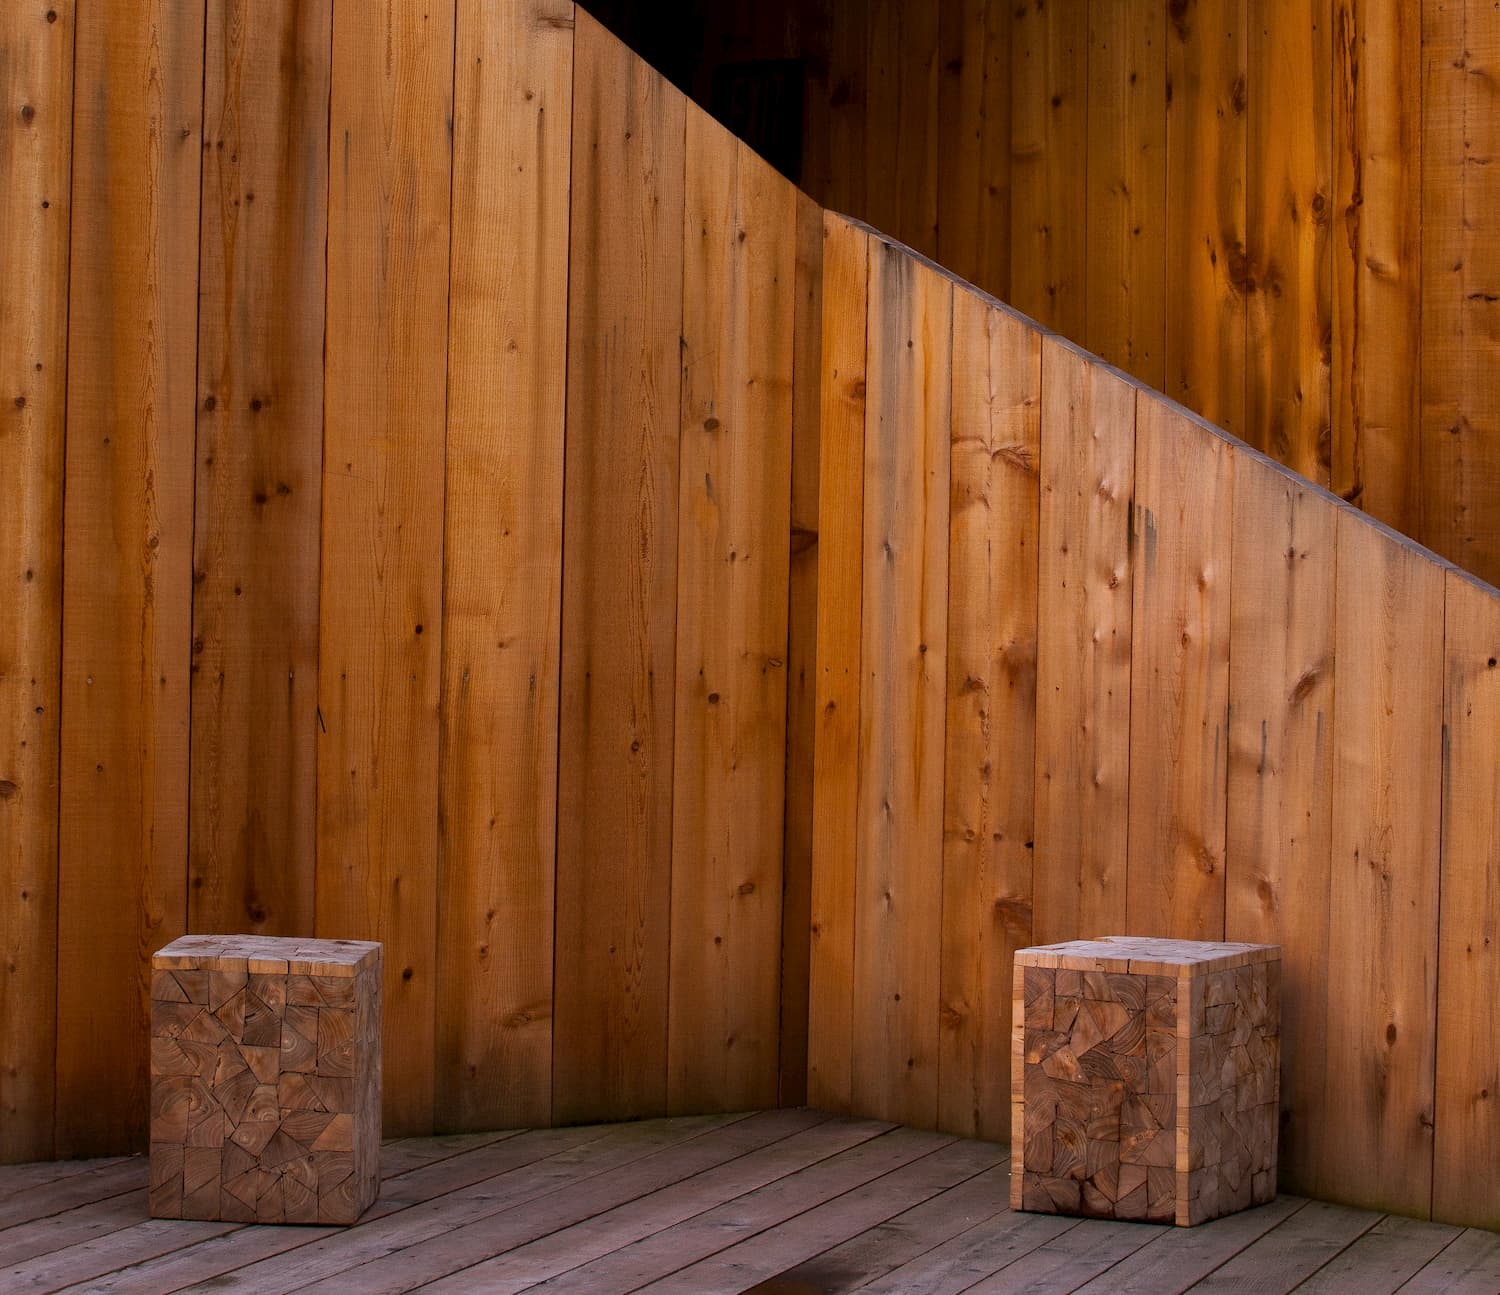 Why is Reclaimed Wood a Thing, and What Makes It So Special?